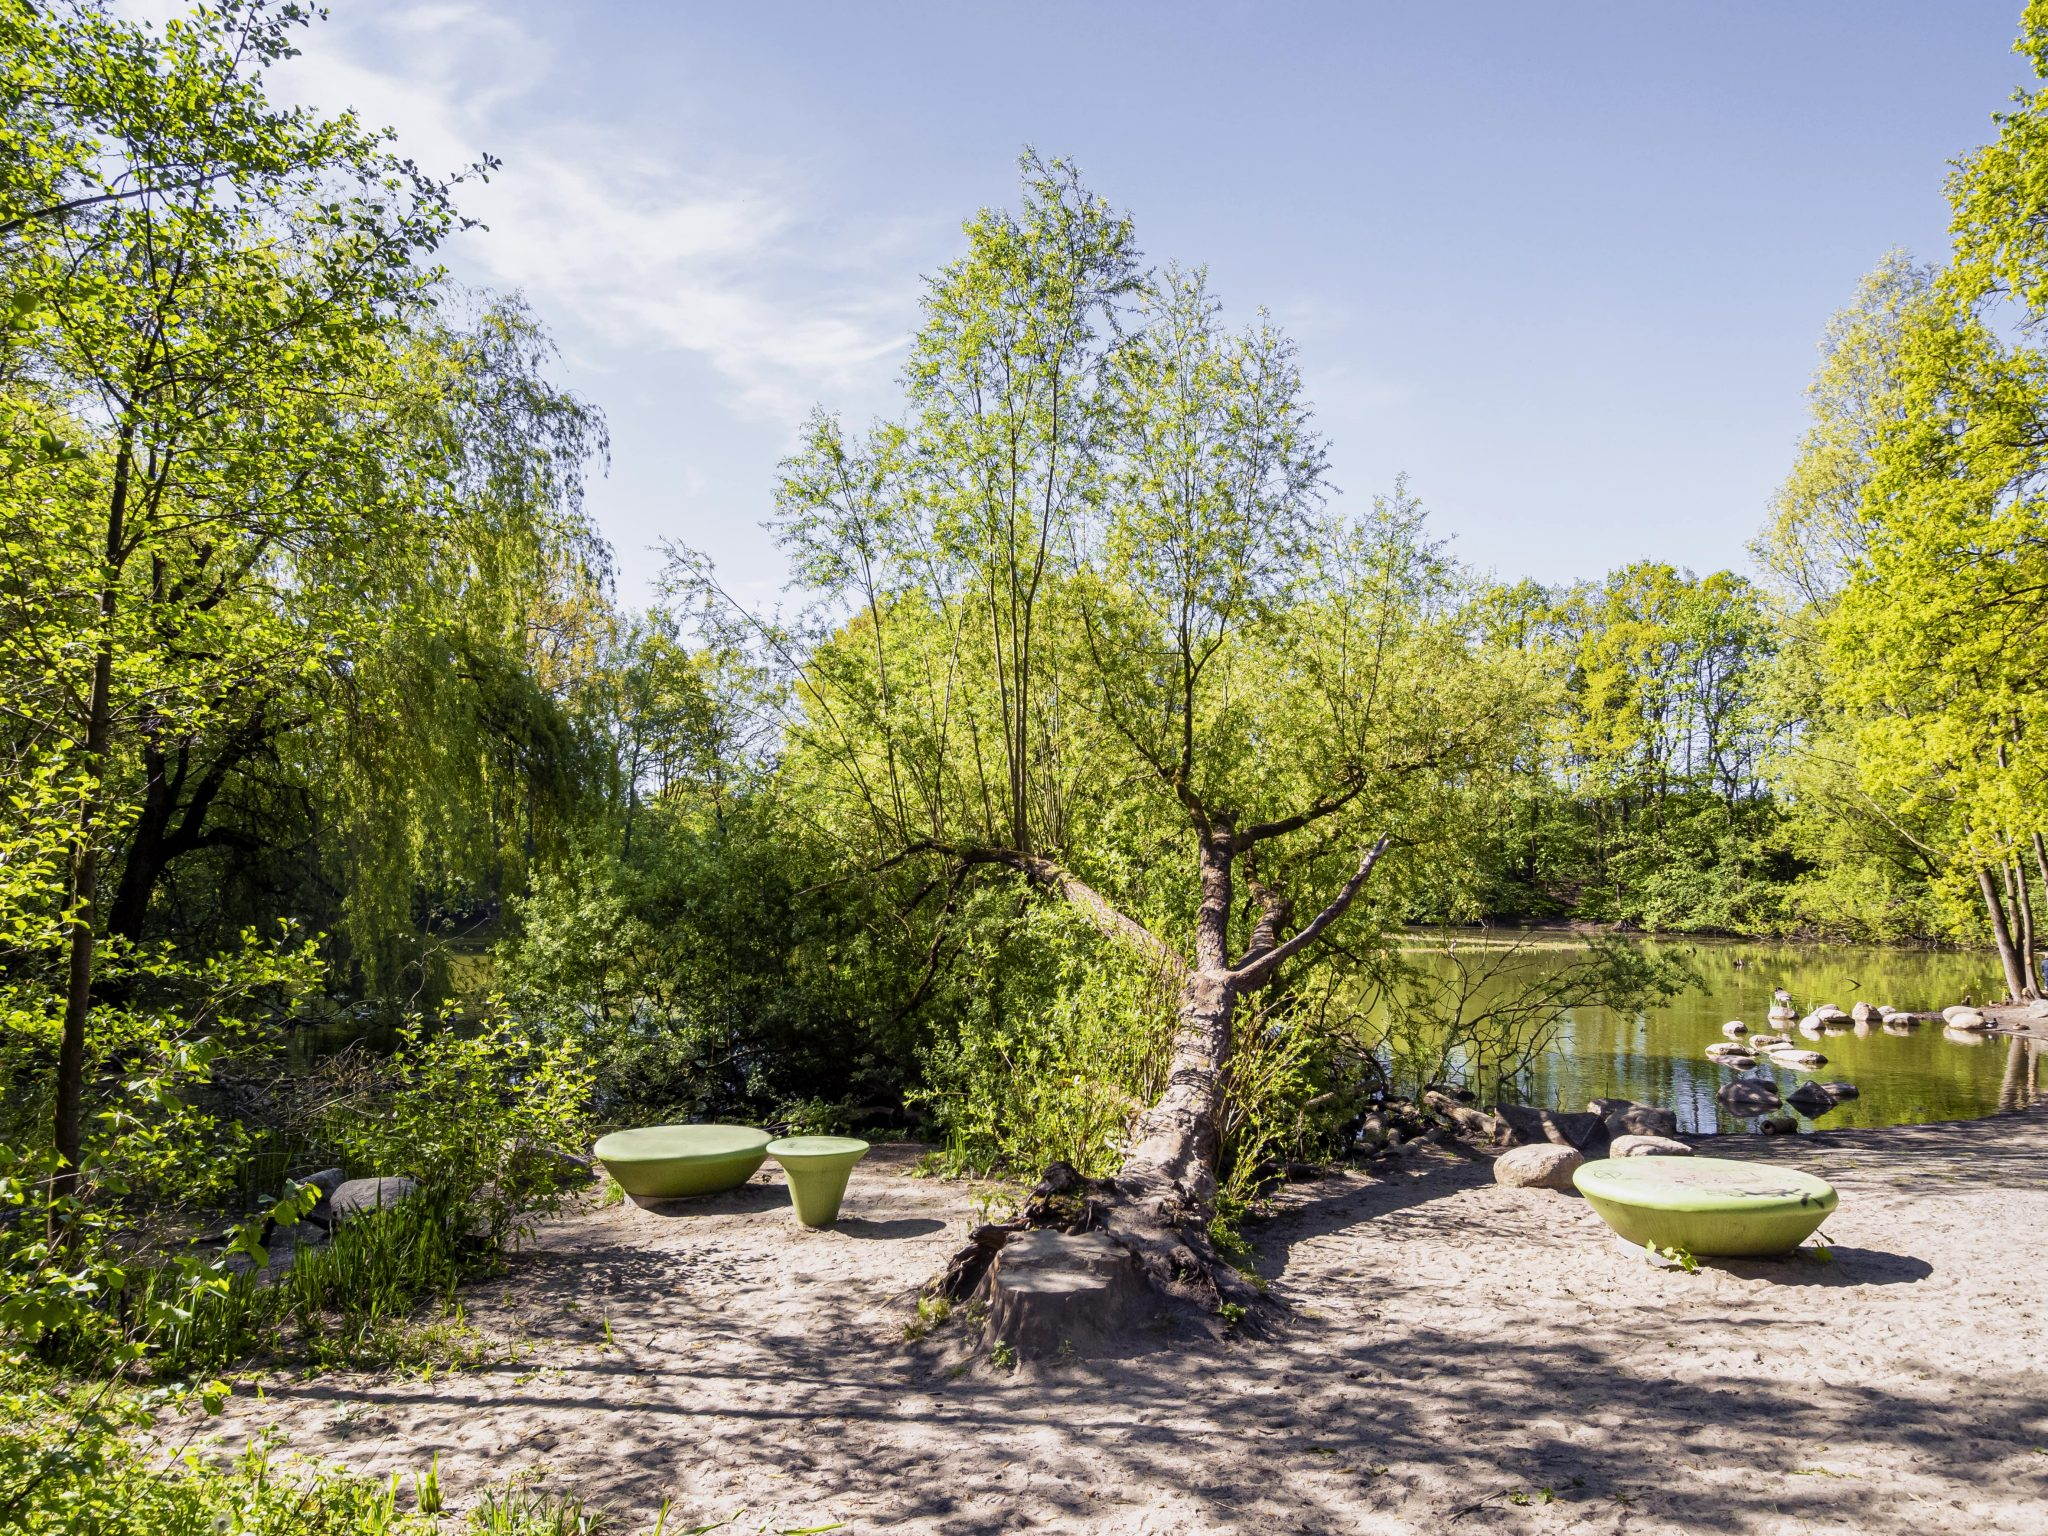 Project 'Big City – little wilderness' Hamburg-Osdorf - project by Landscape Architect to improve access to and use of green space for disadvantaged groups